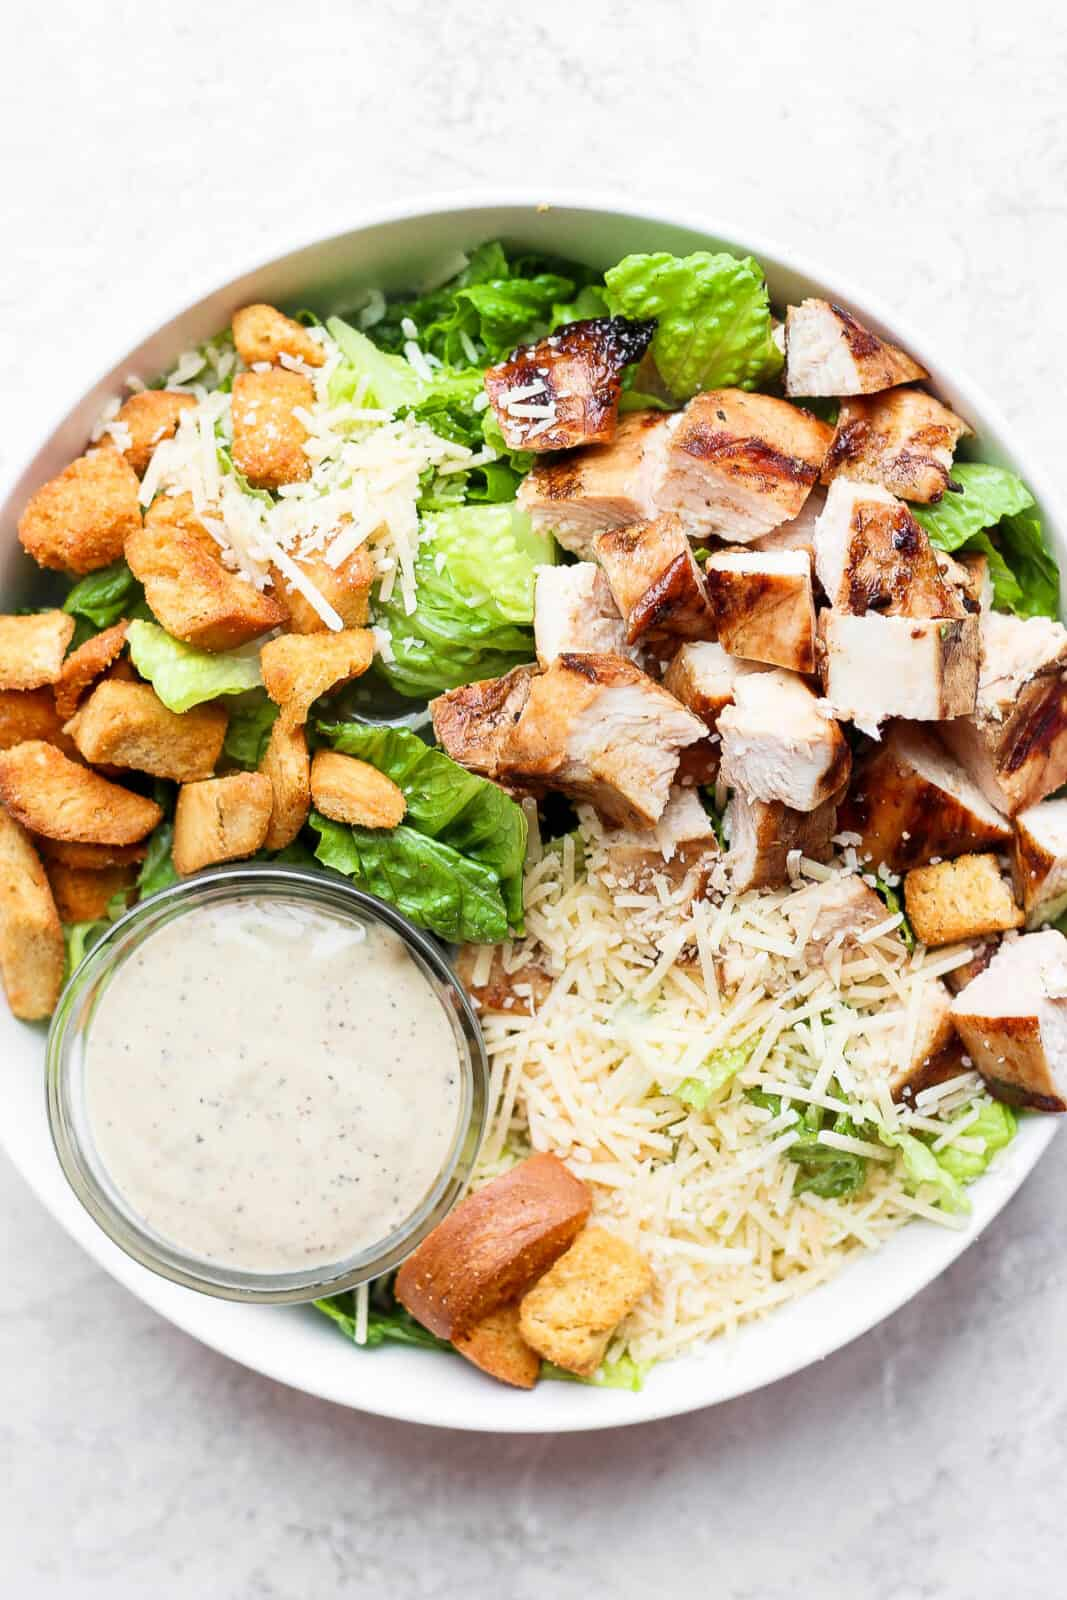 Grilled chicken caesar salad with a small dish of caesar dressing.